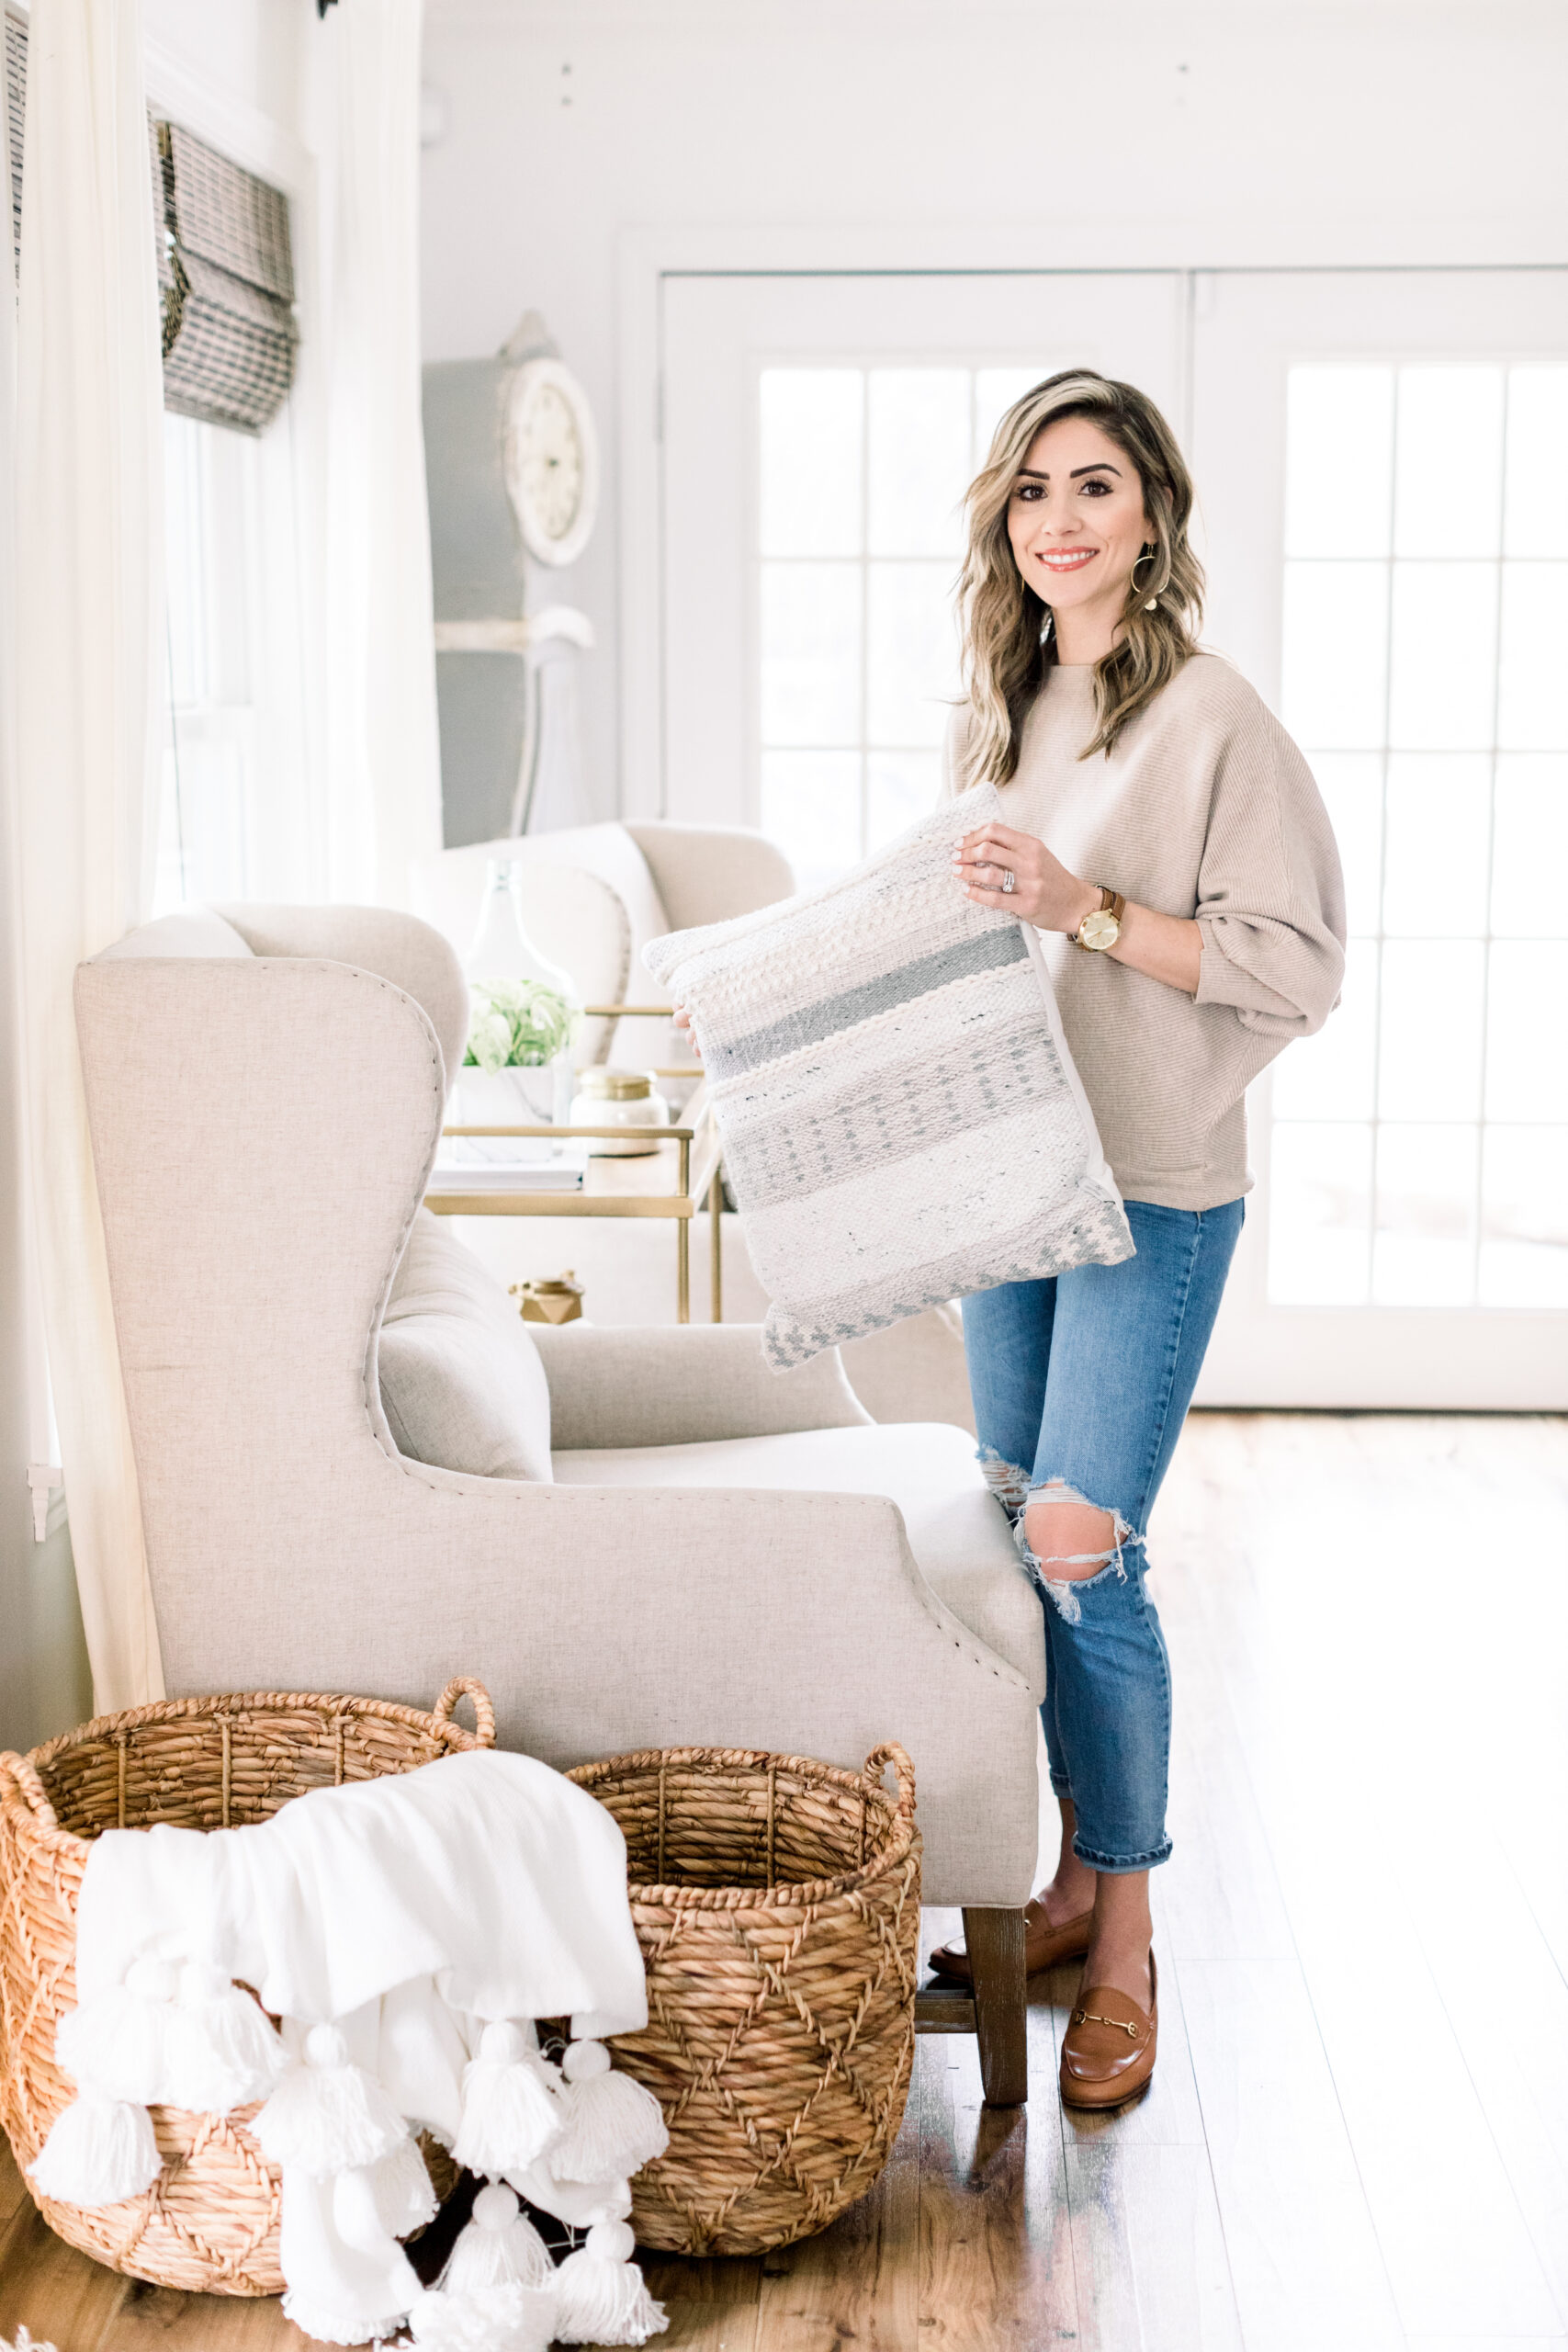 Connecticut based life and style blogger Lauren McBride laucnhes an exclusive home decor collection available now on QVC.com.